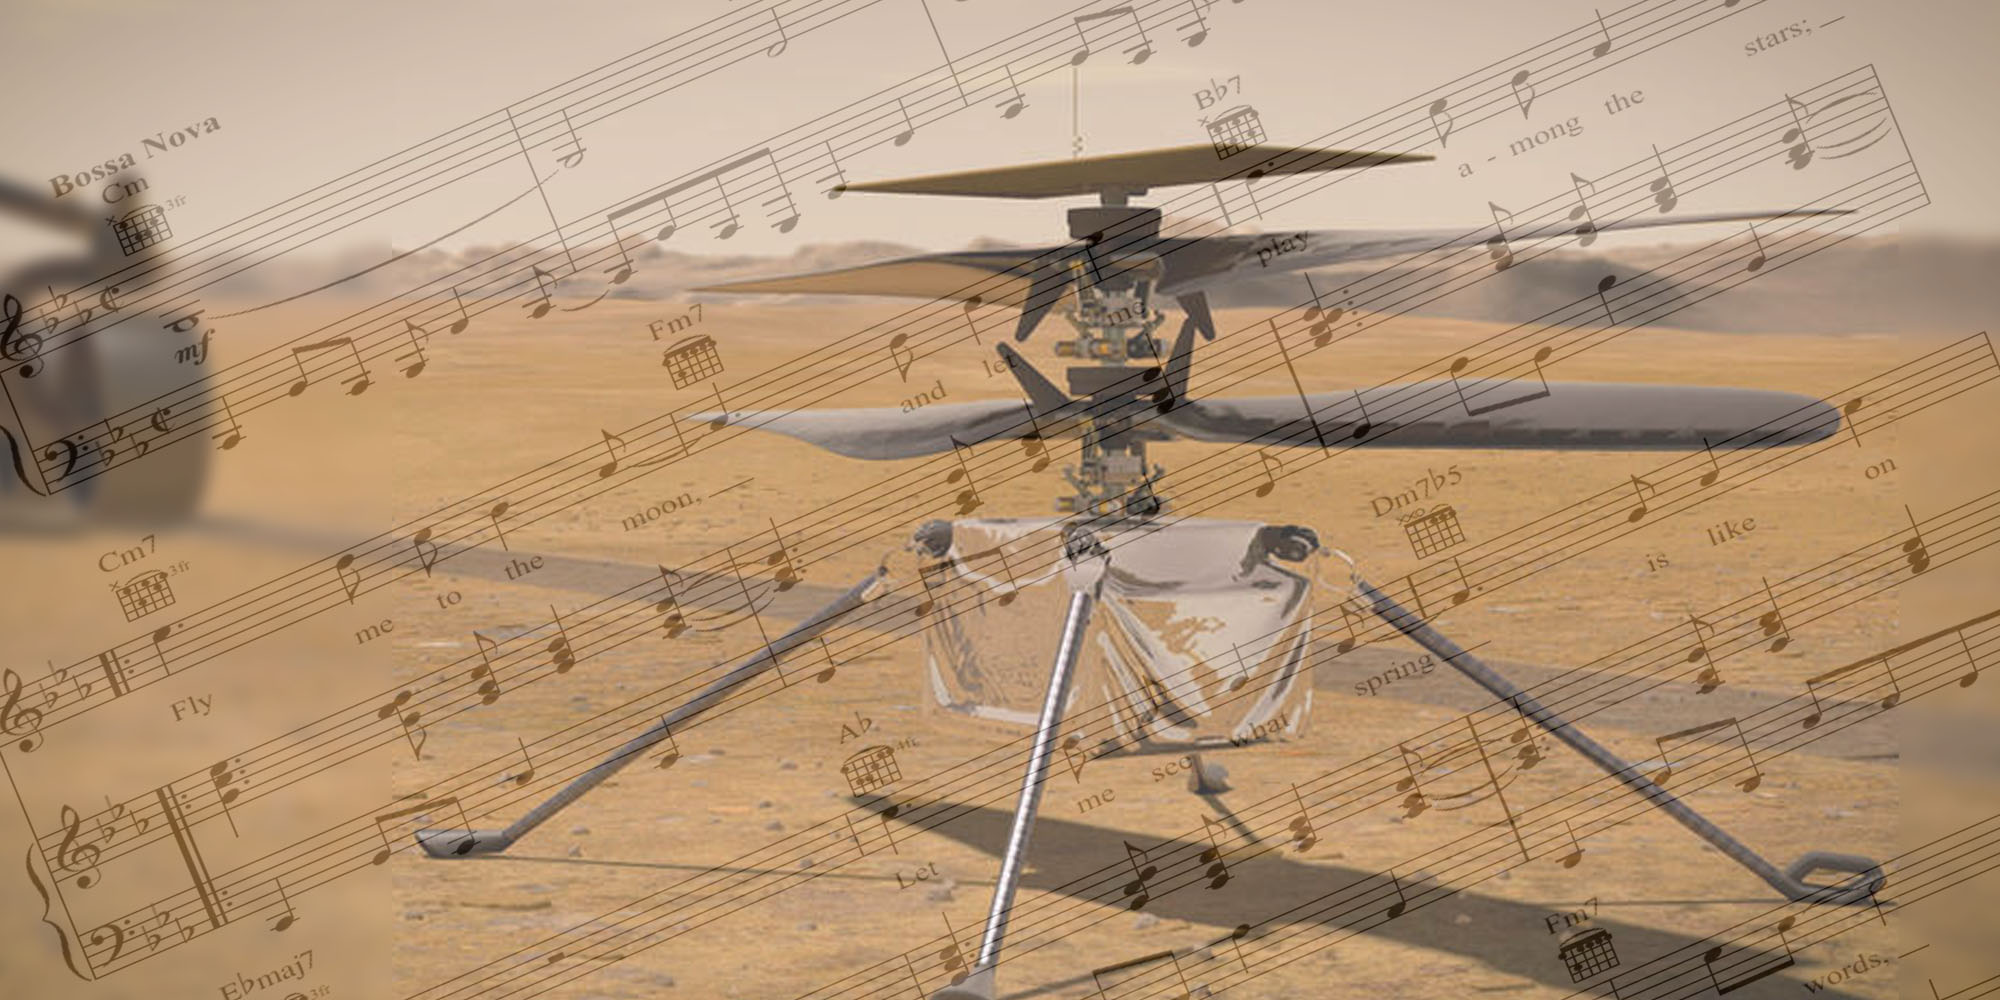 What a drone sounds like on Mars. Not like a theremin.